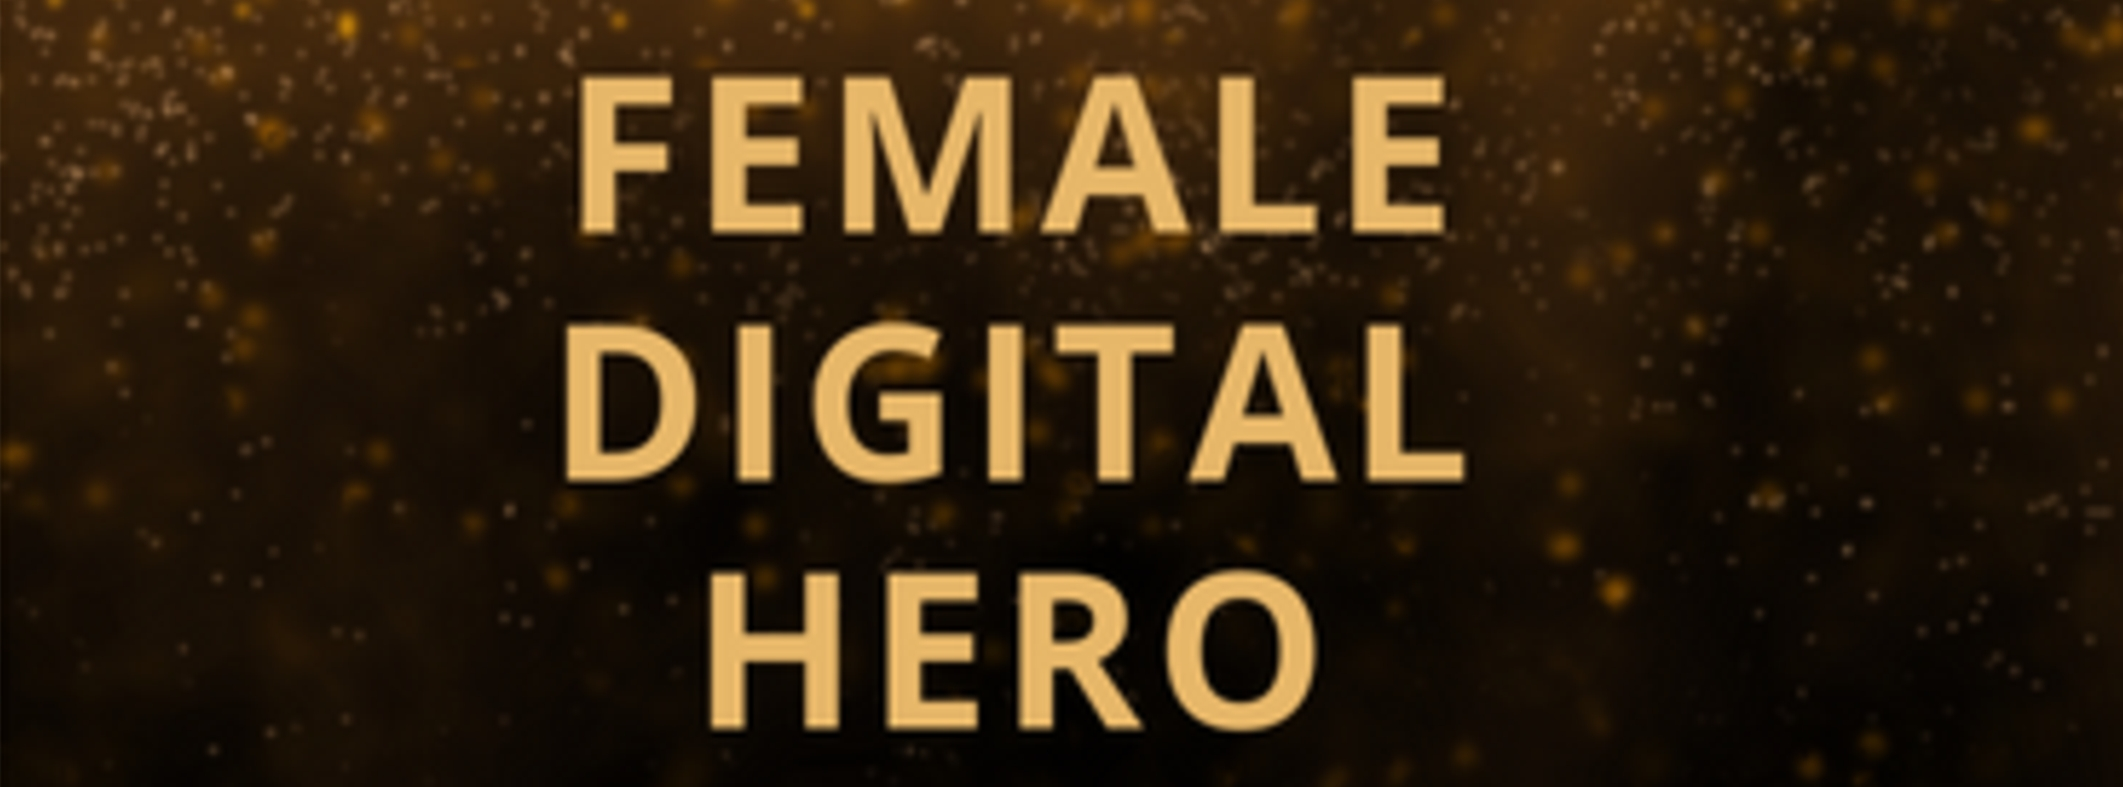 Digital Female Leader Award